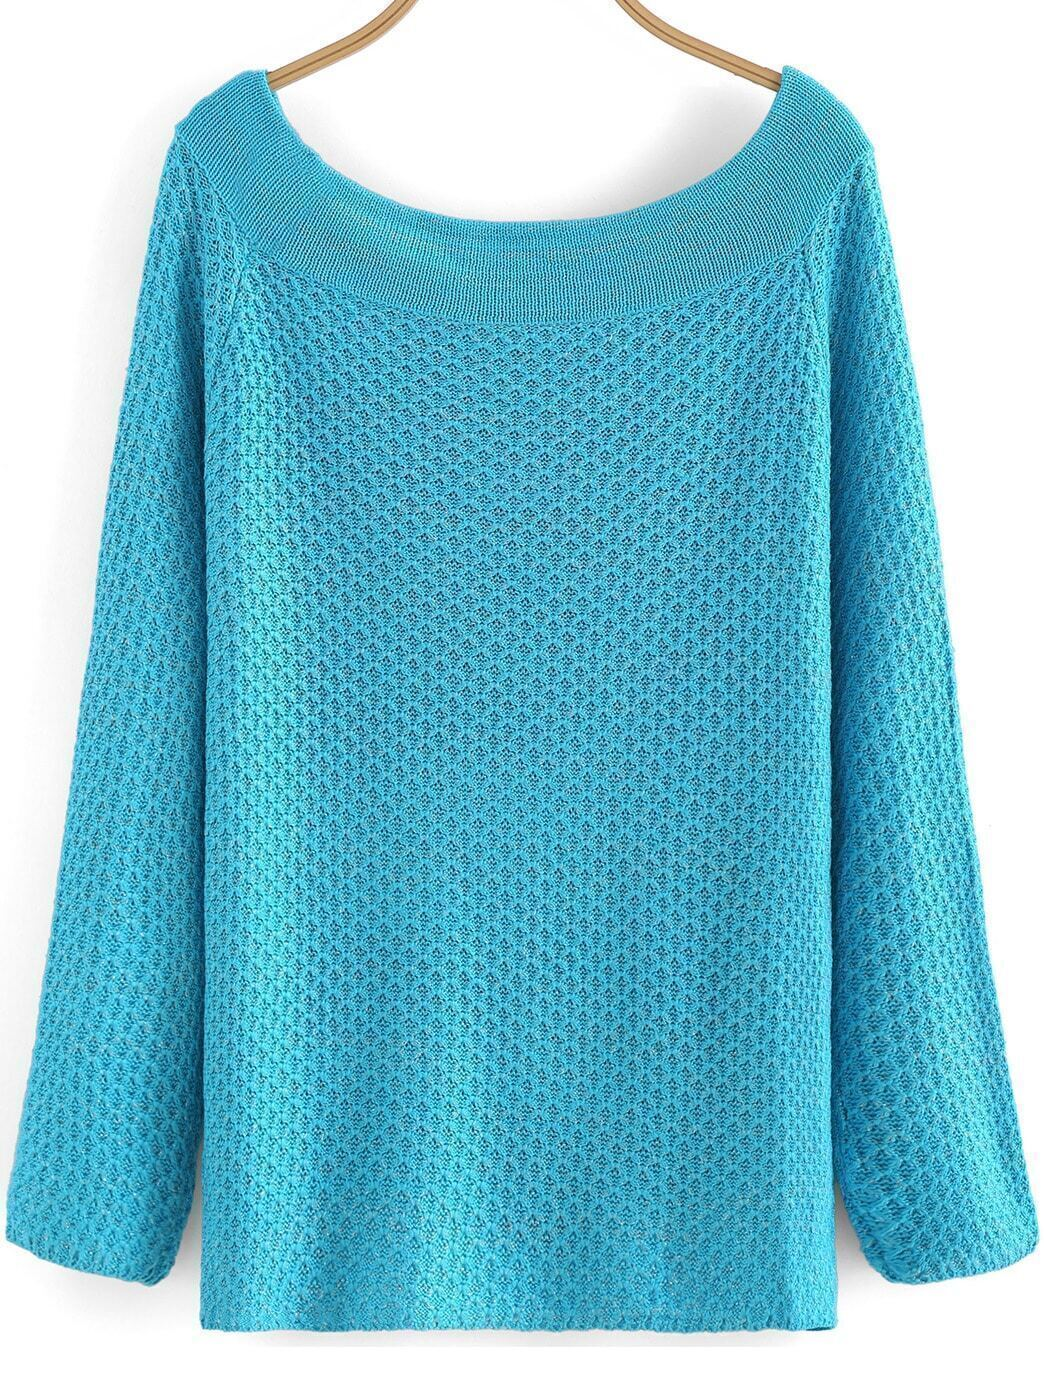 Boat Neck Knit Blue Sweater